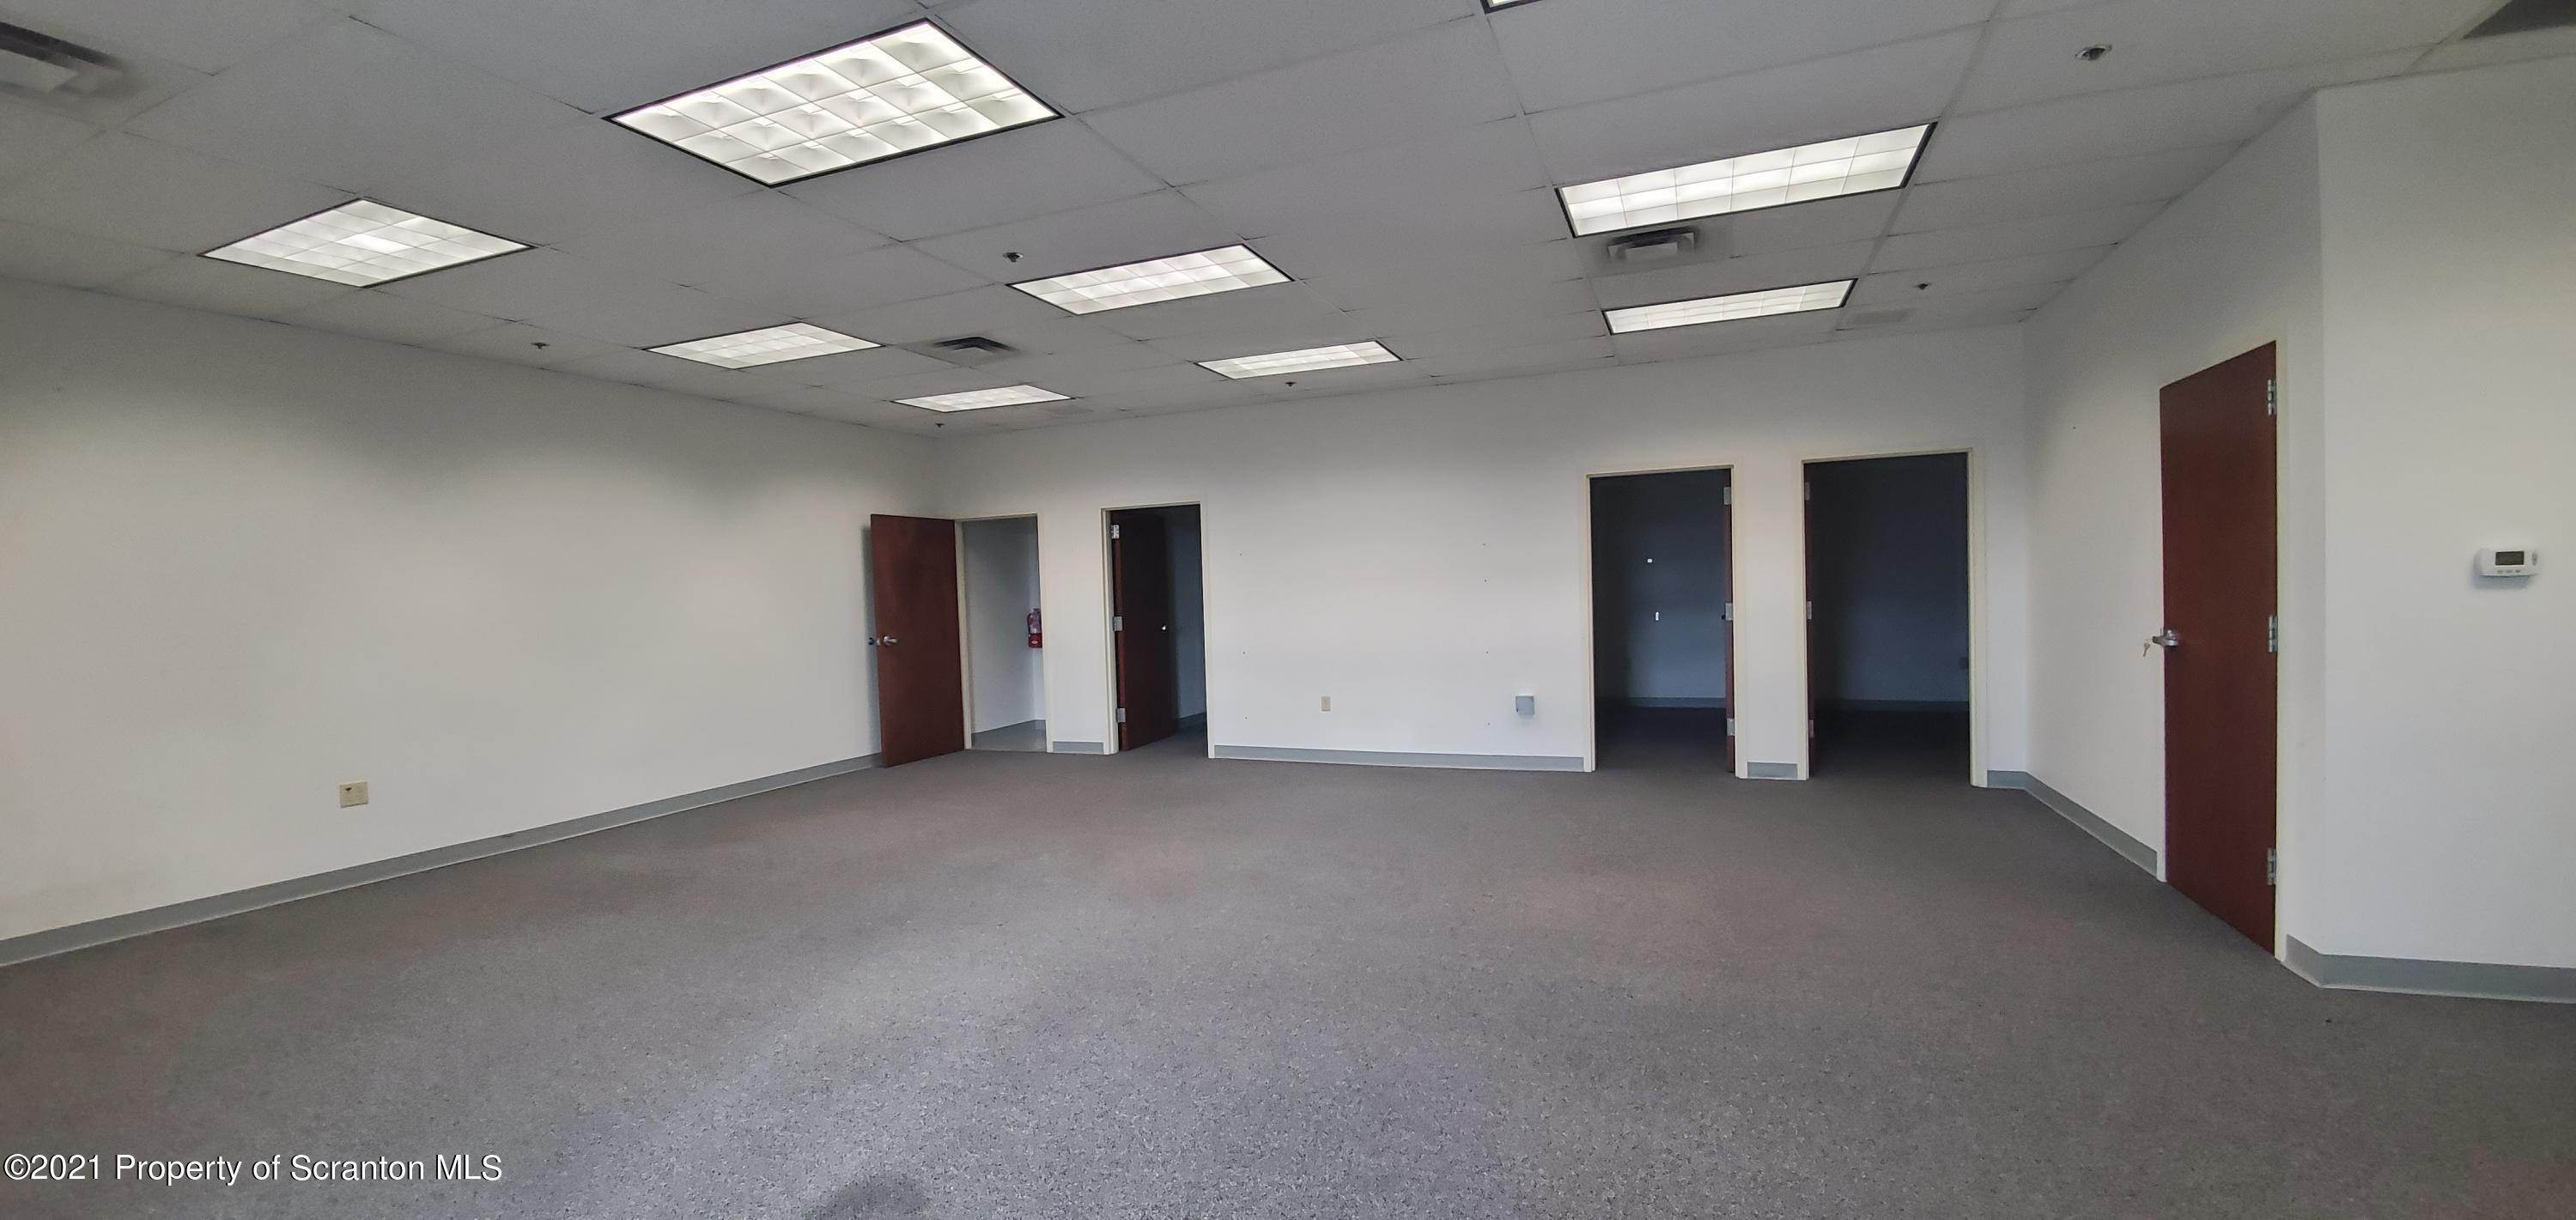 5. Commercial for Rent at 2200 Stafford Ave Scranton, Pennsylvania 18505 United States